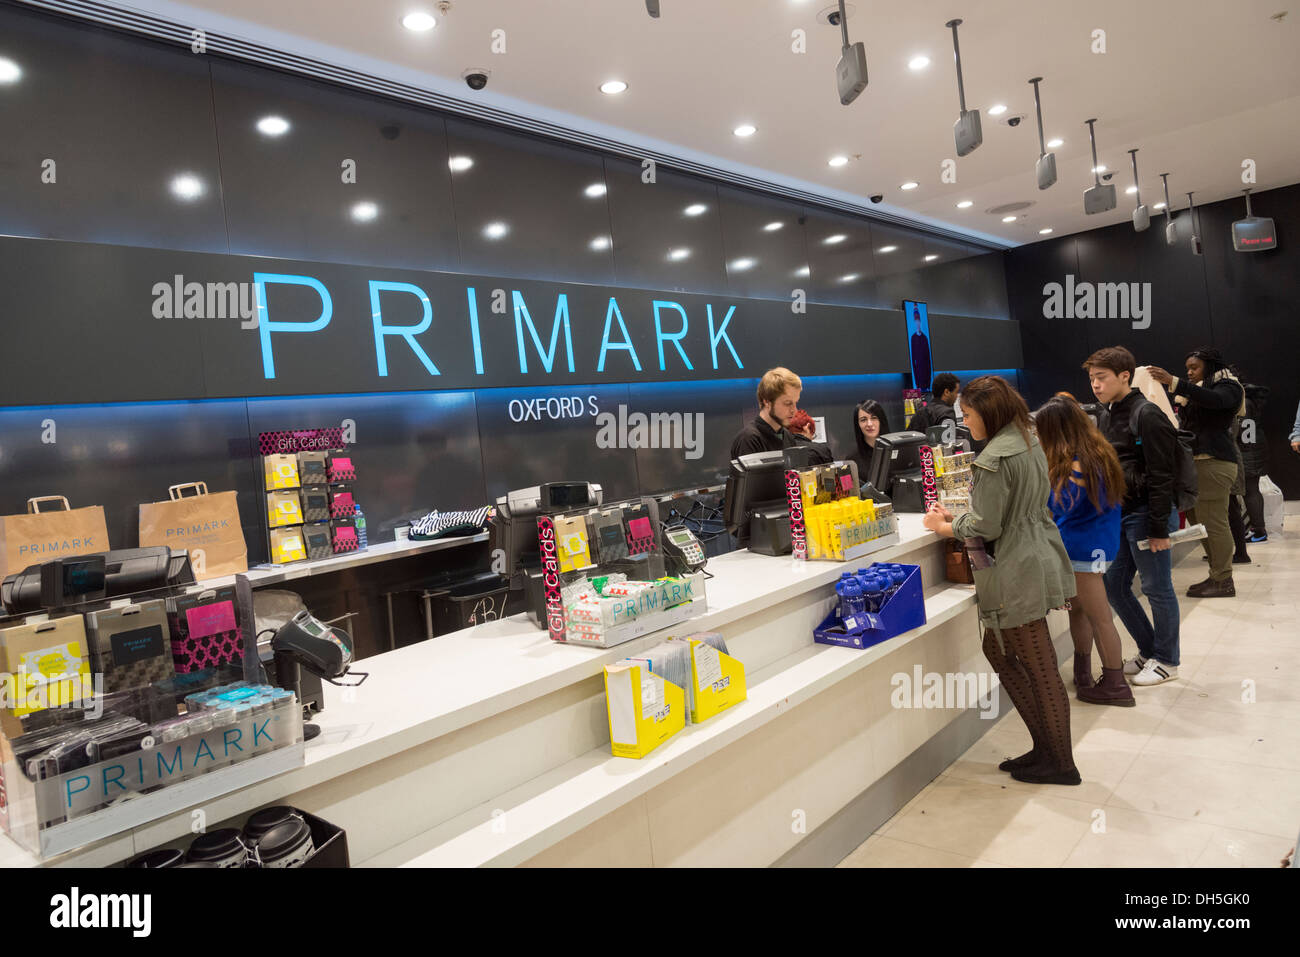 Find your nearest Primark store locations in United Kingdom.